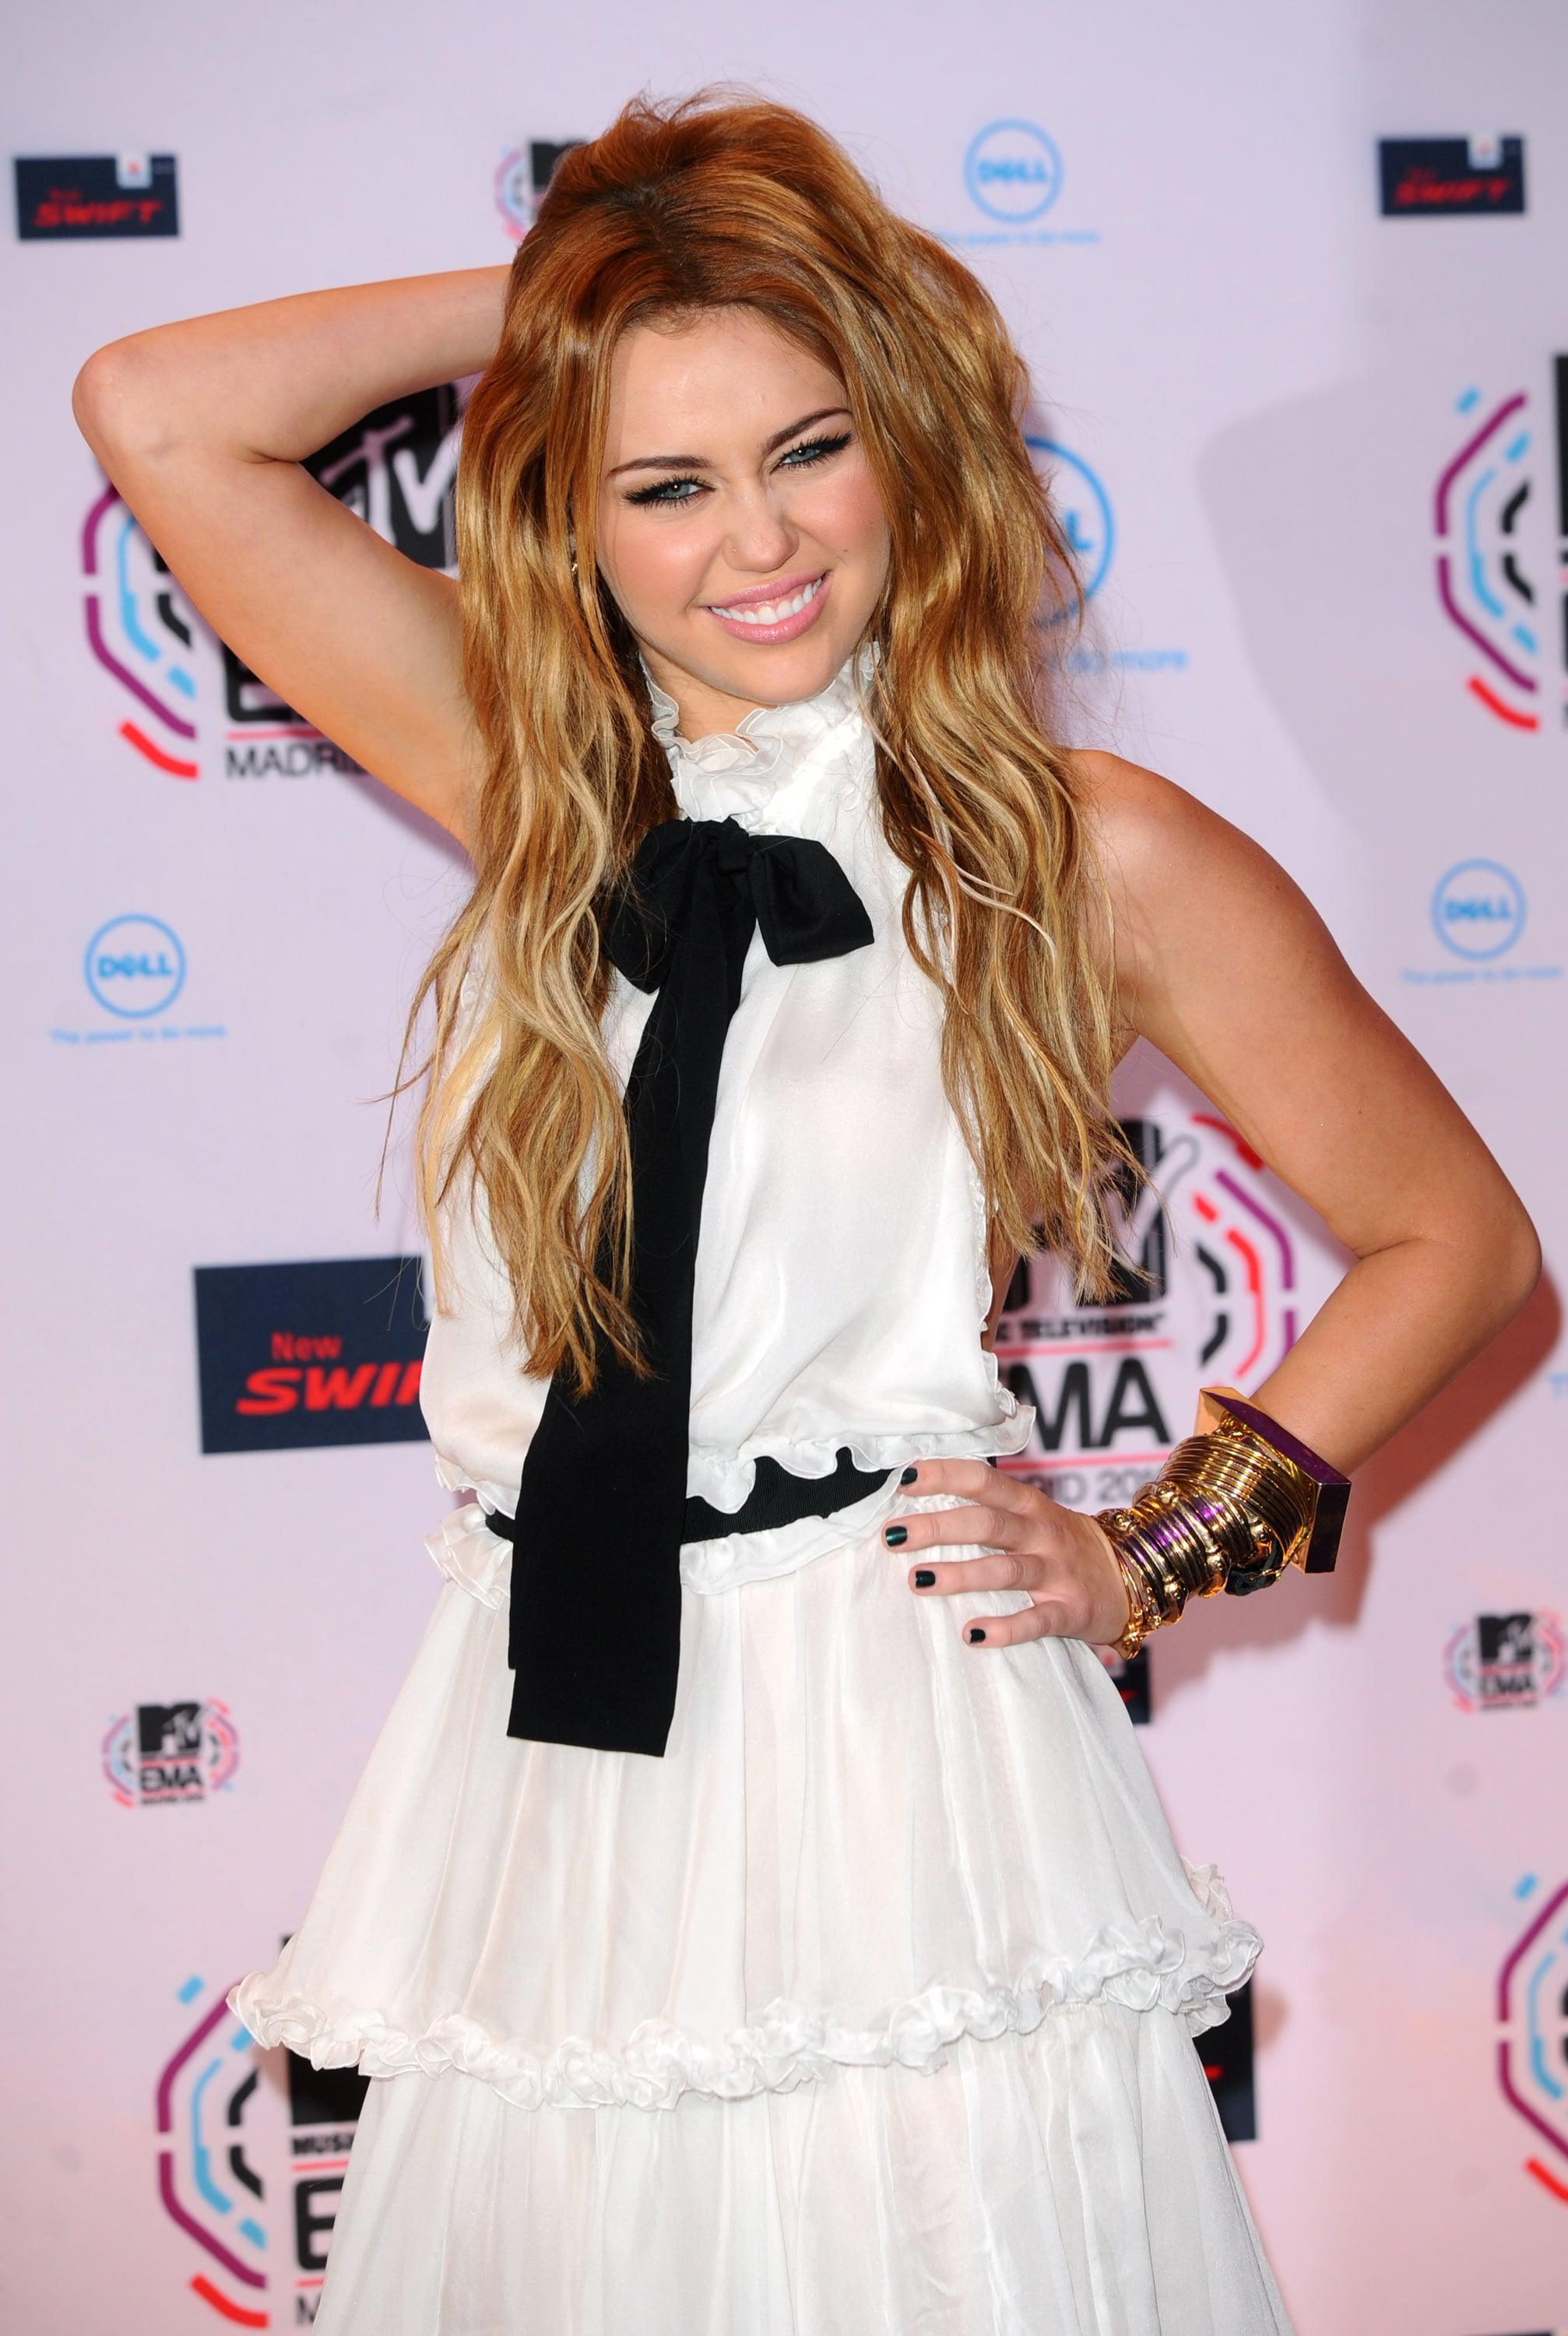 Miley Cyrus takes a stand, says she wont walk the red